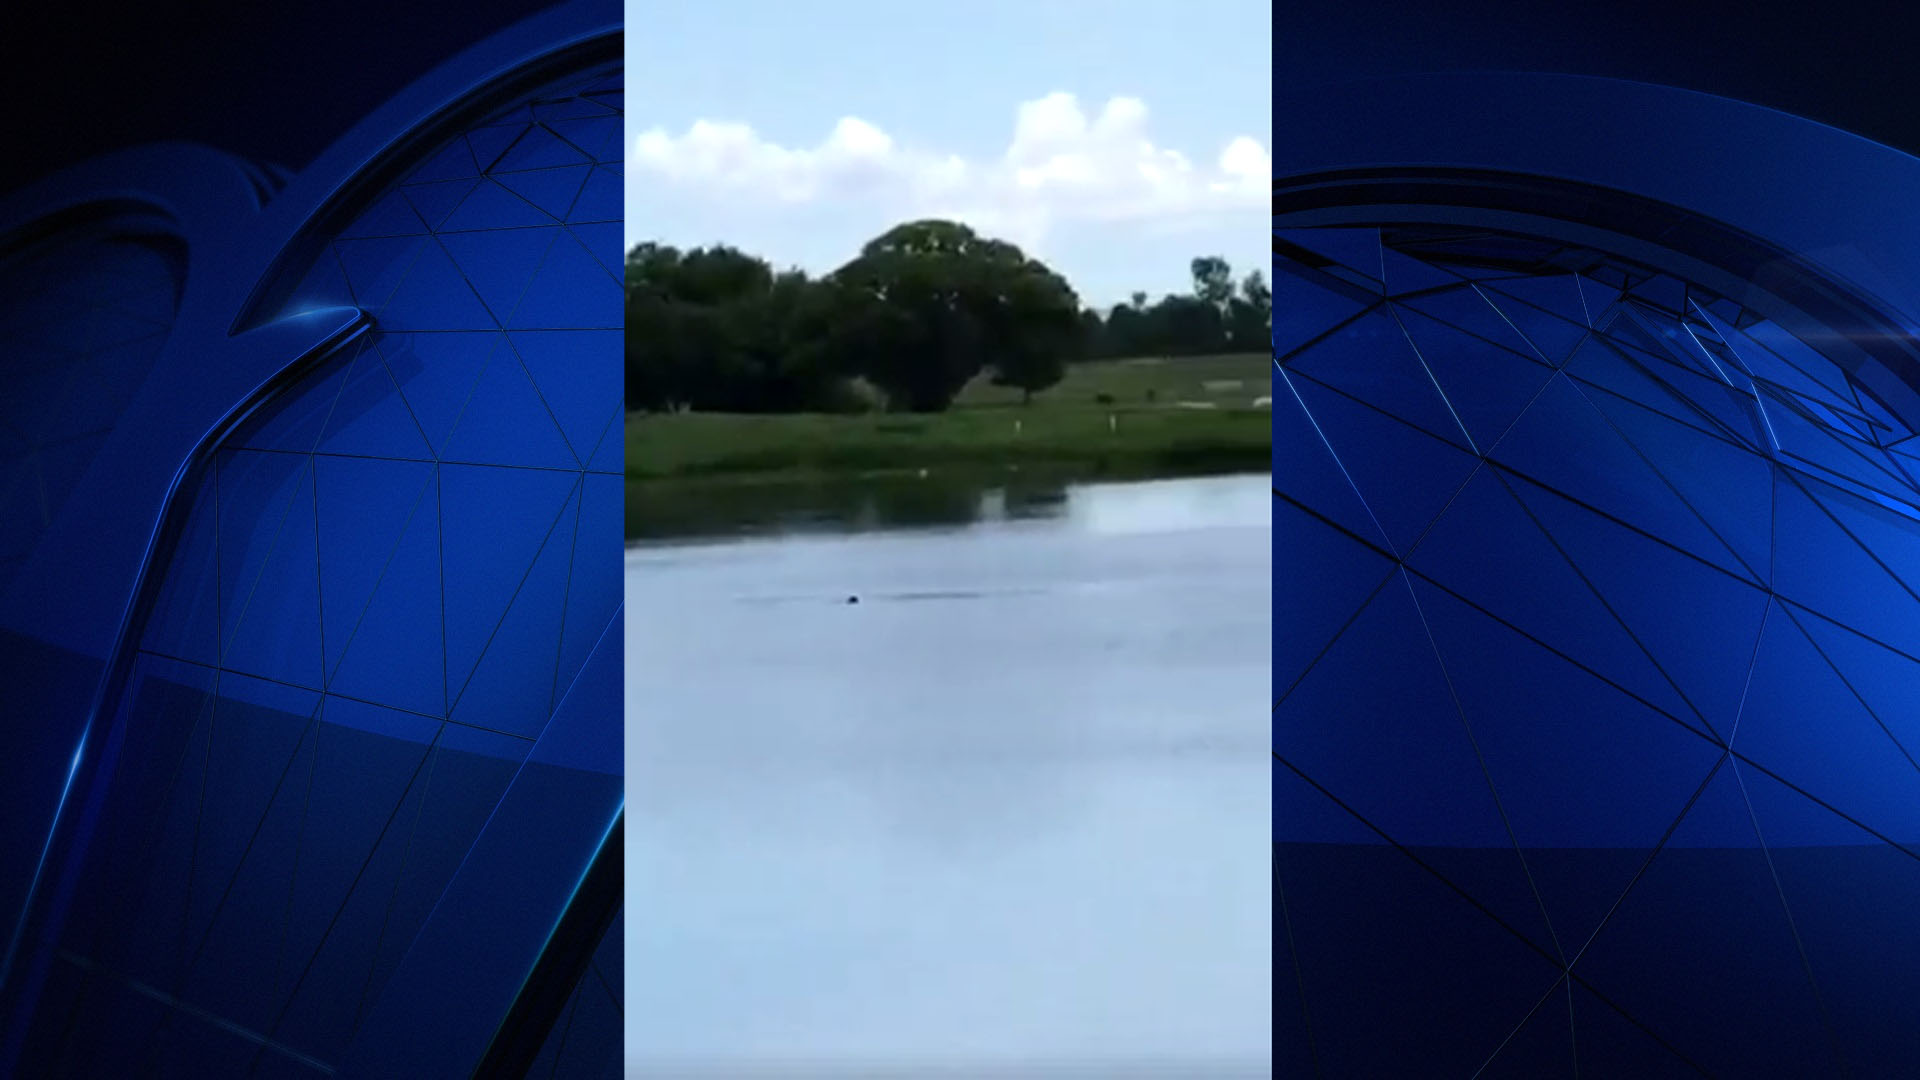 Video on social media purports to show the drowning death of 31-year-old Jamel Dunn.